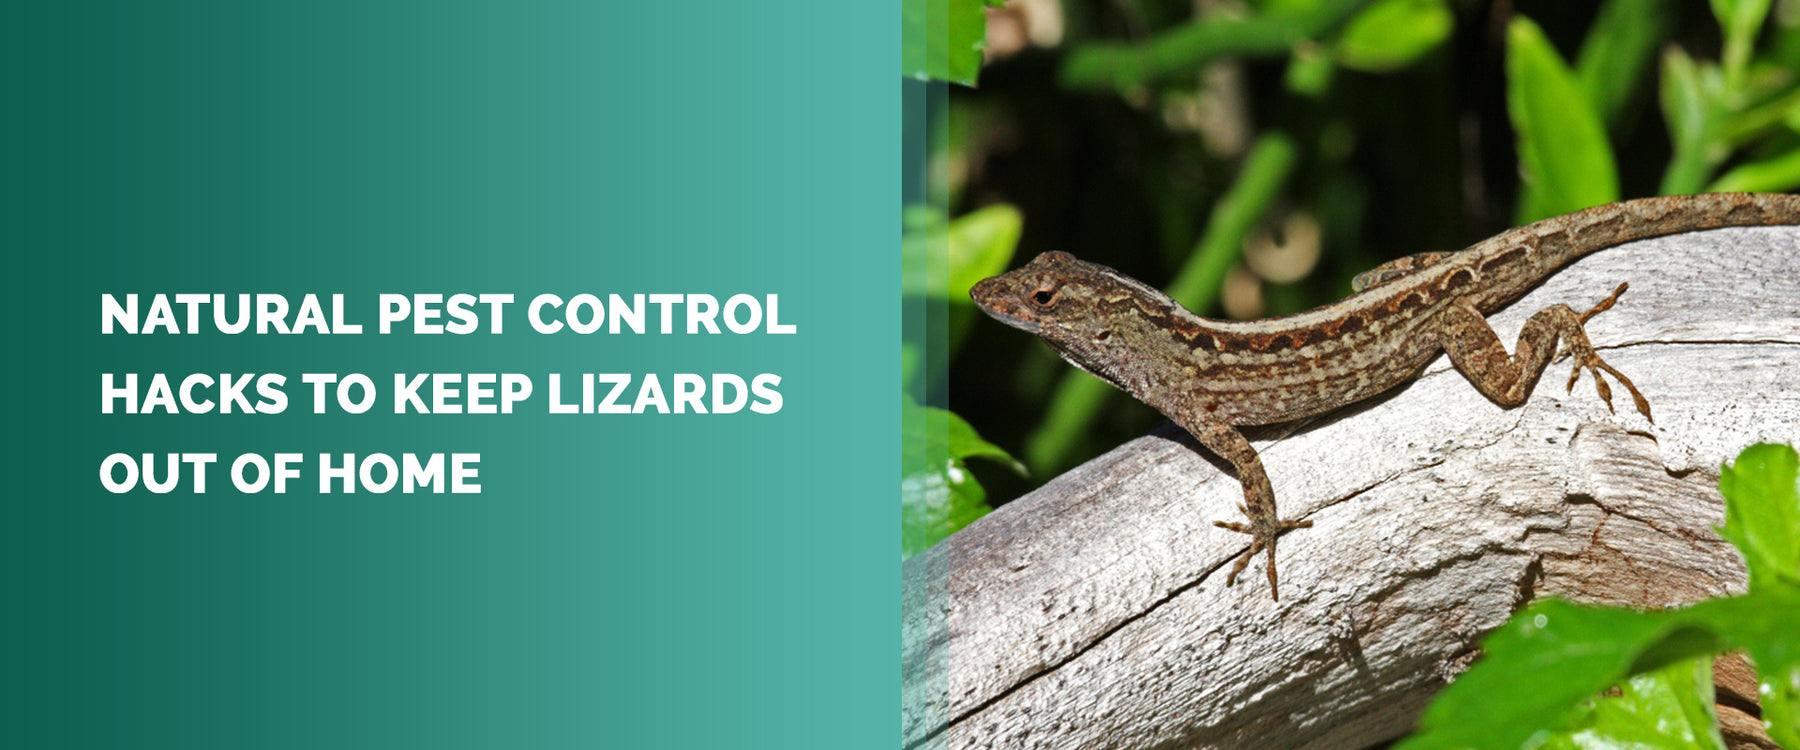 Natural Pest Control Hacks To Keep Lizards Out Of Home